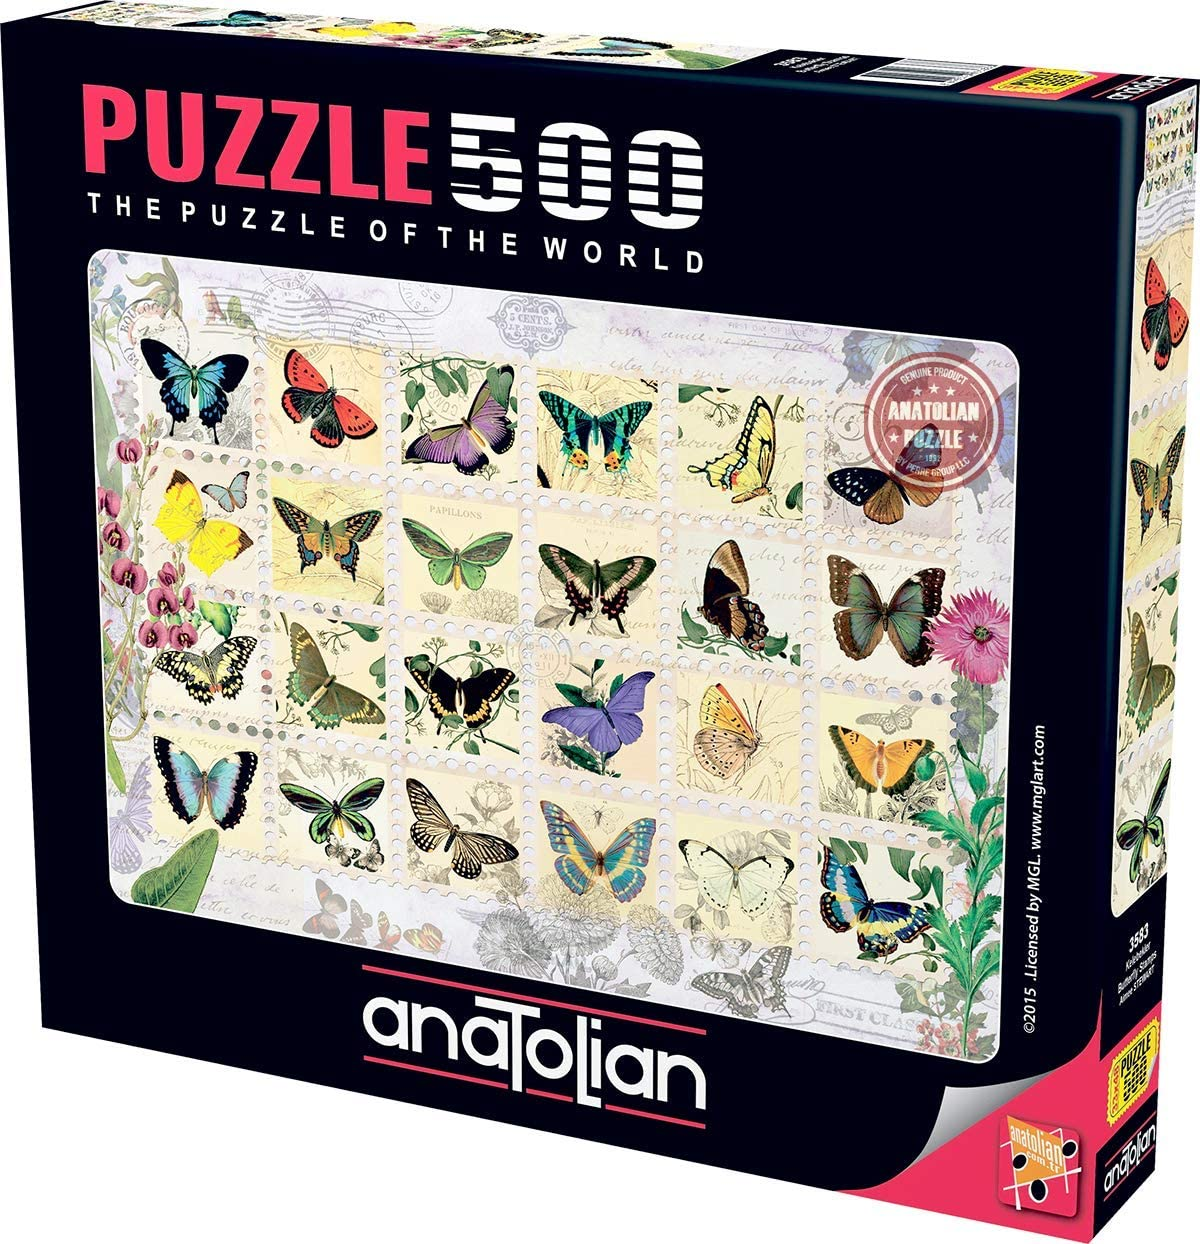 Anatolian Butterfly Stamps Jigsaw Puzzle (500 Piece)